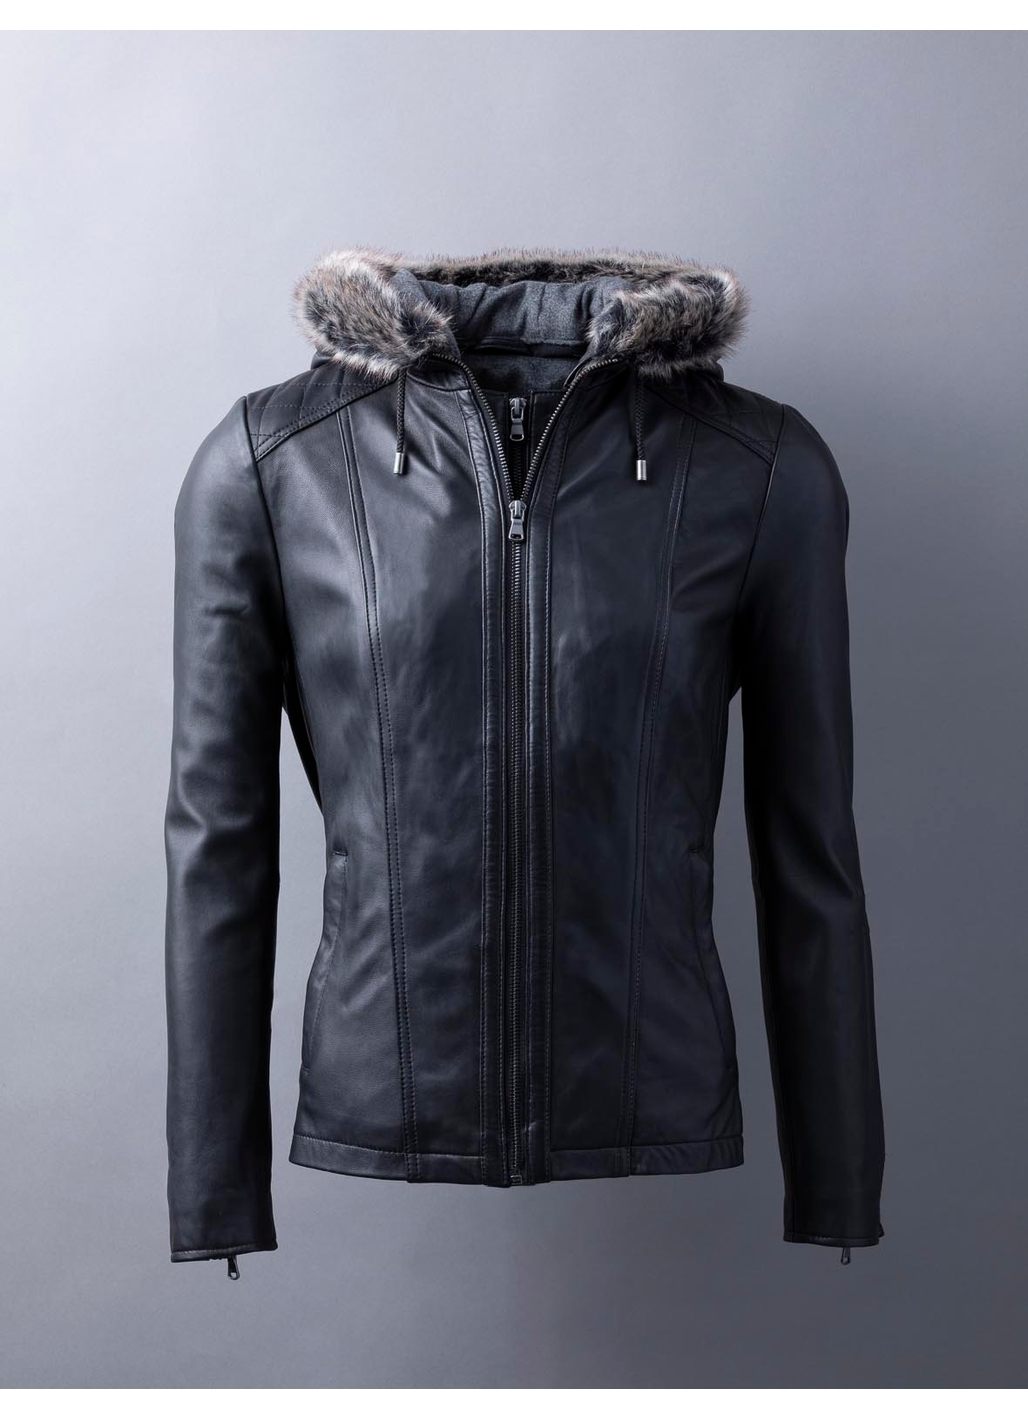 Applethwaite Hooded Leather Jacket in Black